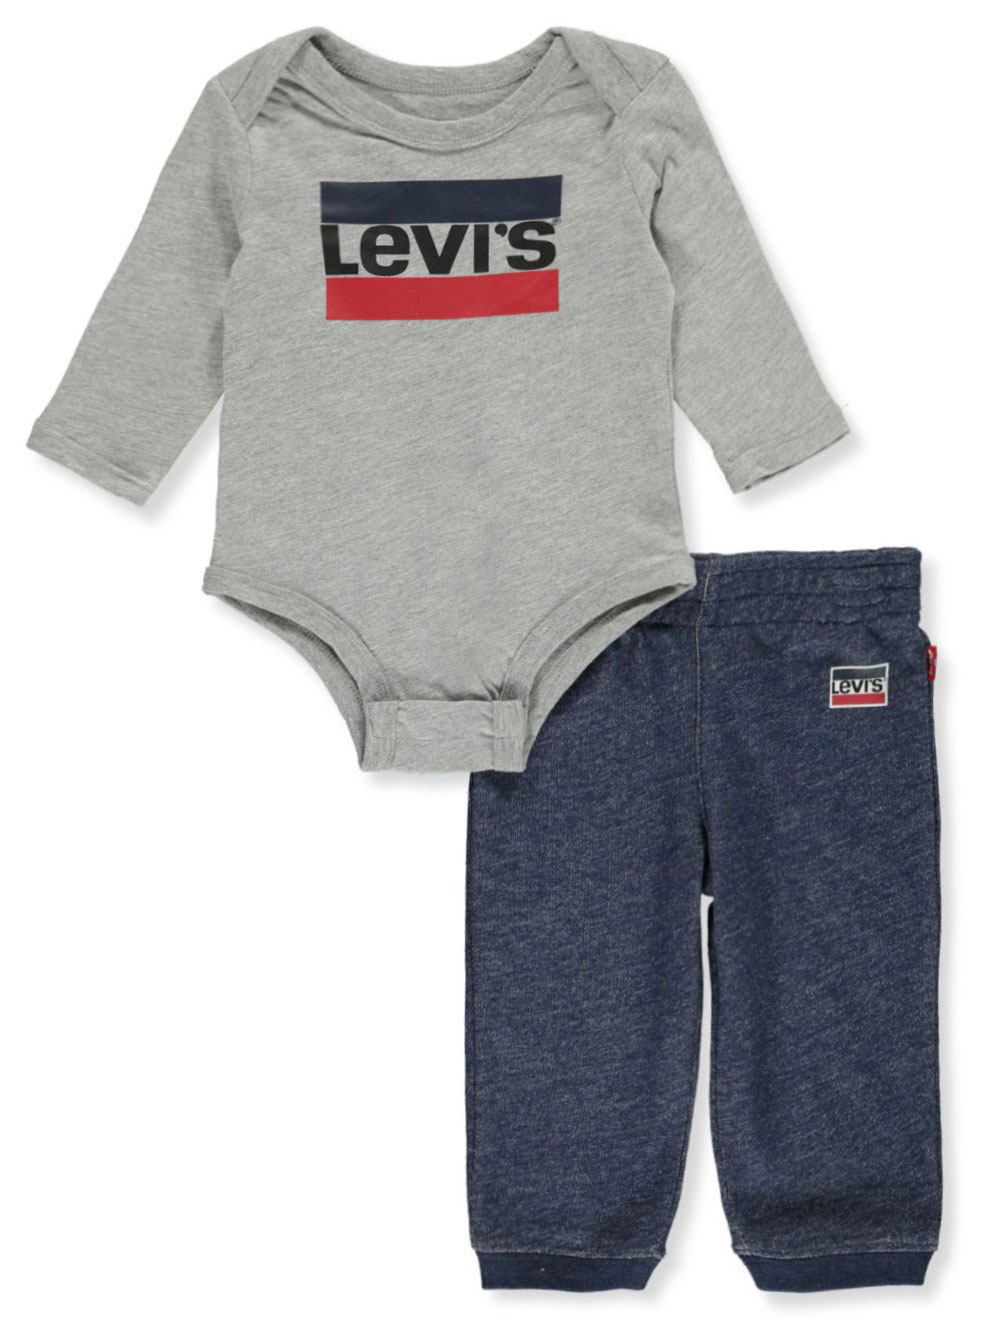 Boys' 2-Piece Joggers Set Outfit